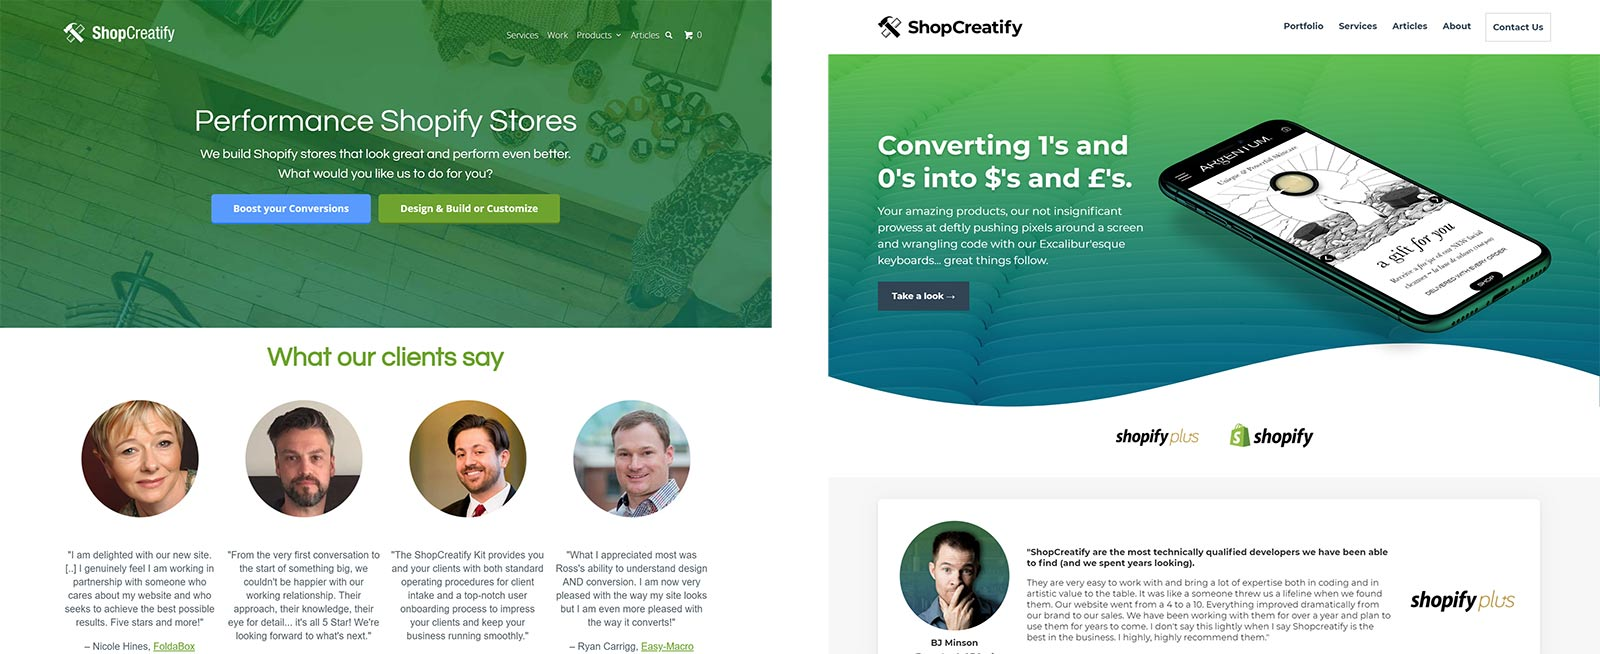 ShopCreatify Agency Site Redesign